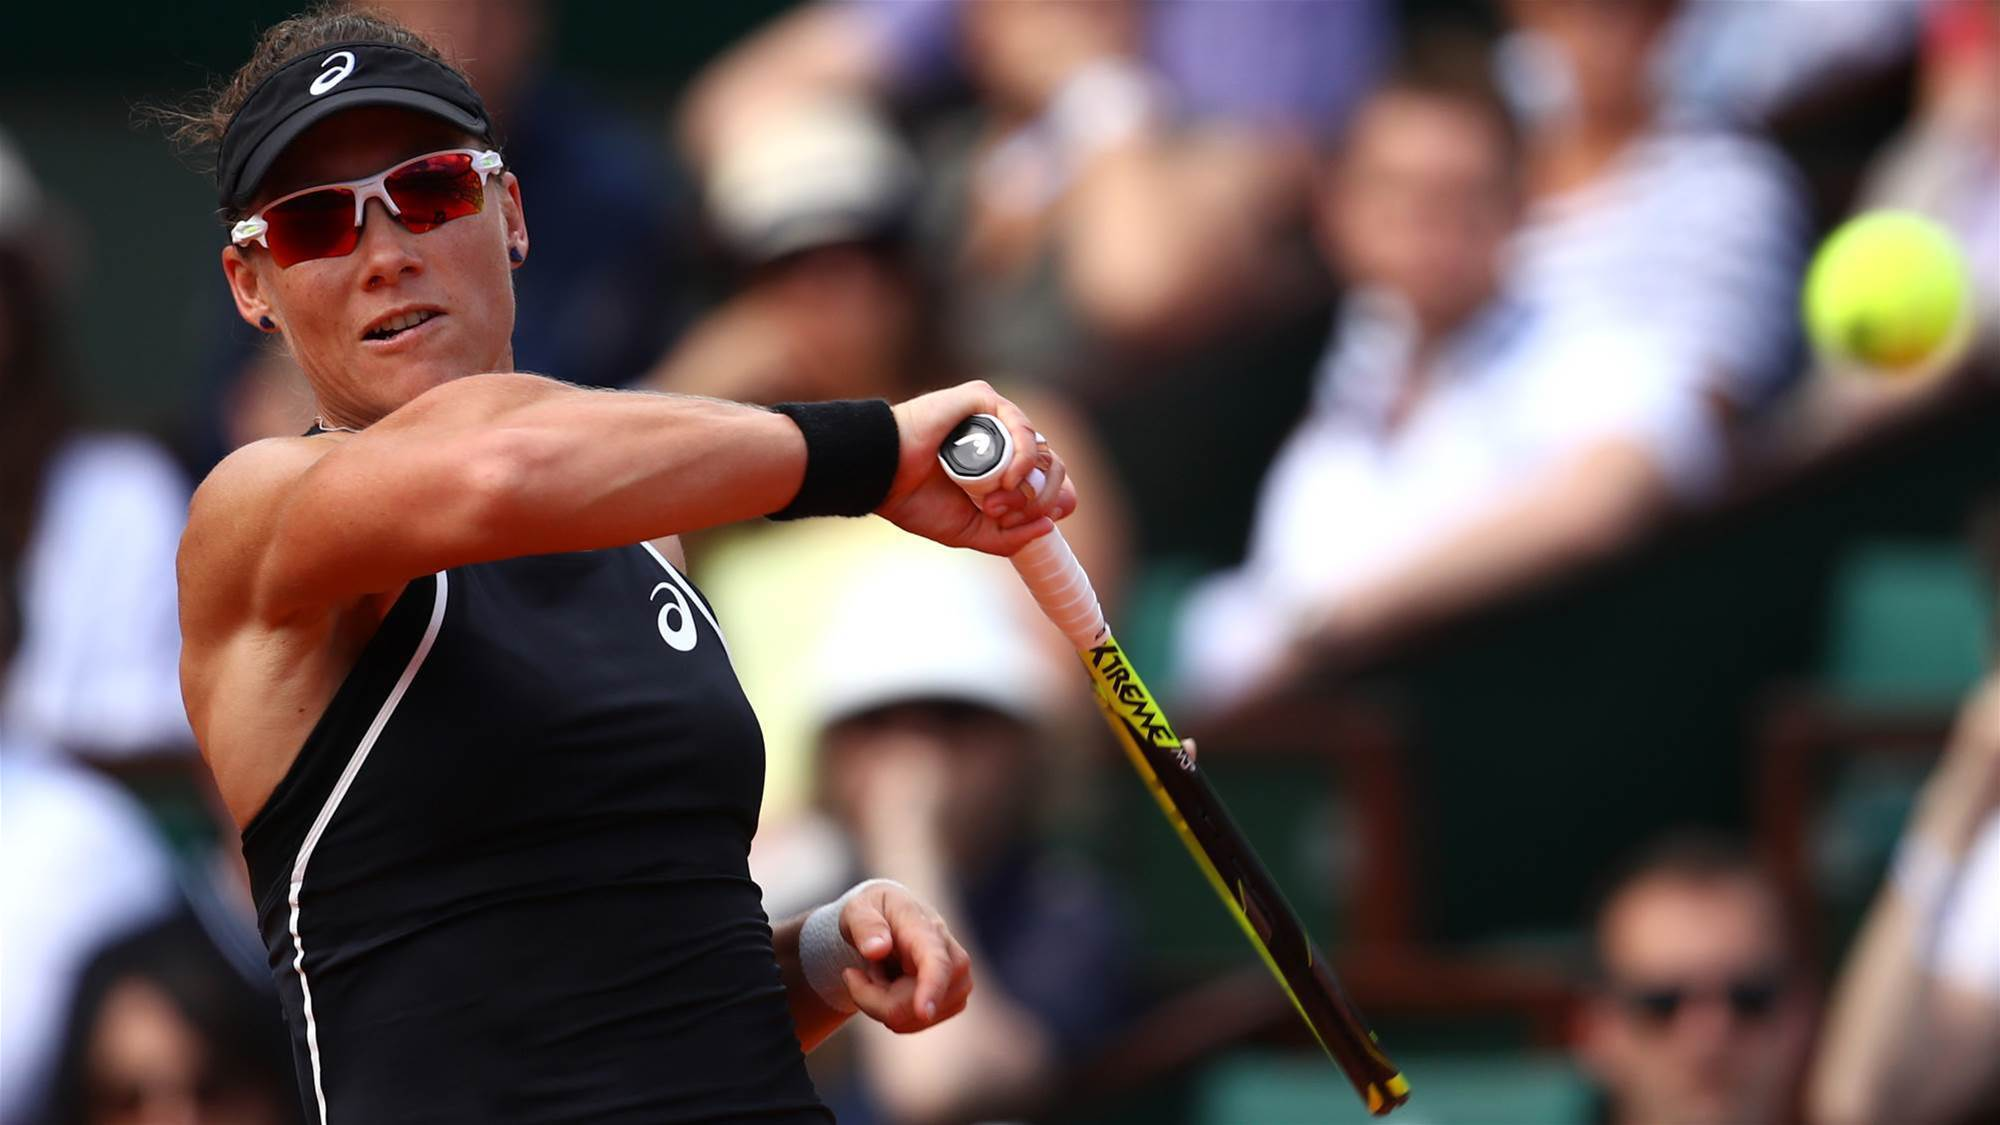 Stosur through to first grass quarterfinal in 7 years